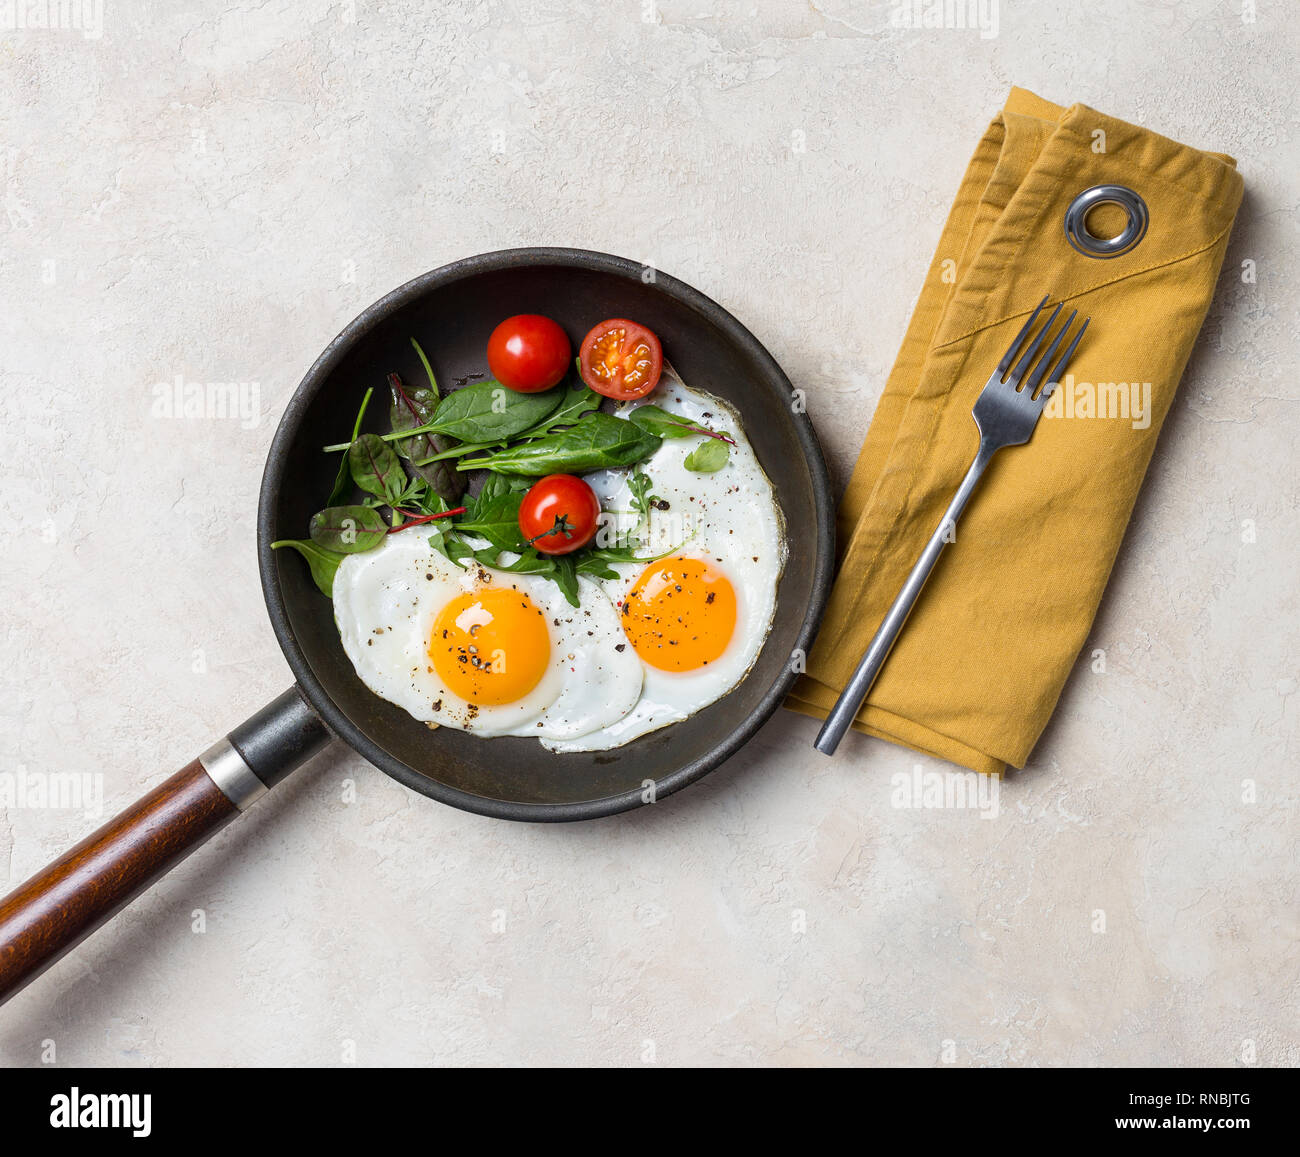 Skillet with two fried eggs, herbs, cherry tomatoes, fork and napkin at white background - Stock Image